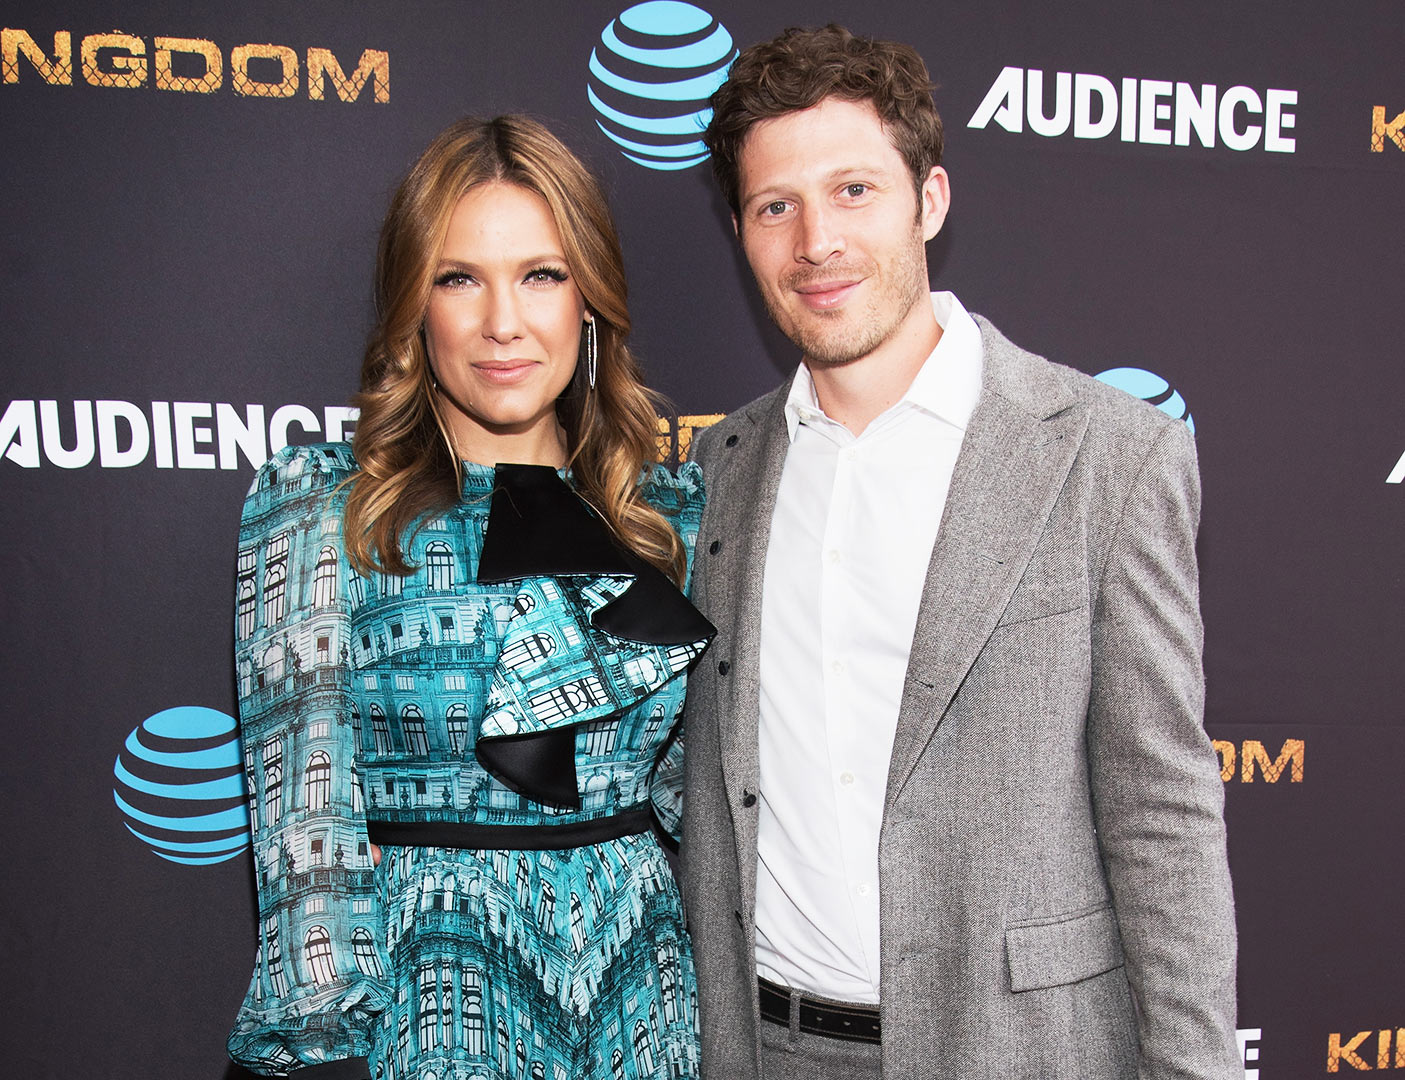 Kiele Sanchez and Zach Gilford - Kiele Sanchez and Zach Gilford attend the premiere screening of DirecTV's 'Kingdom' at Harmony Gold Theater on May 25, 2016 in Los Angeles, California.